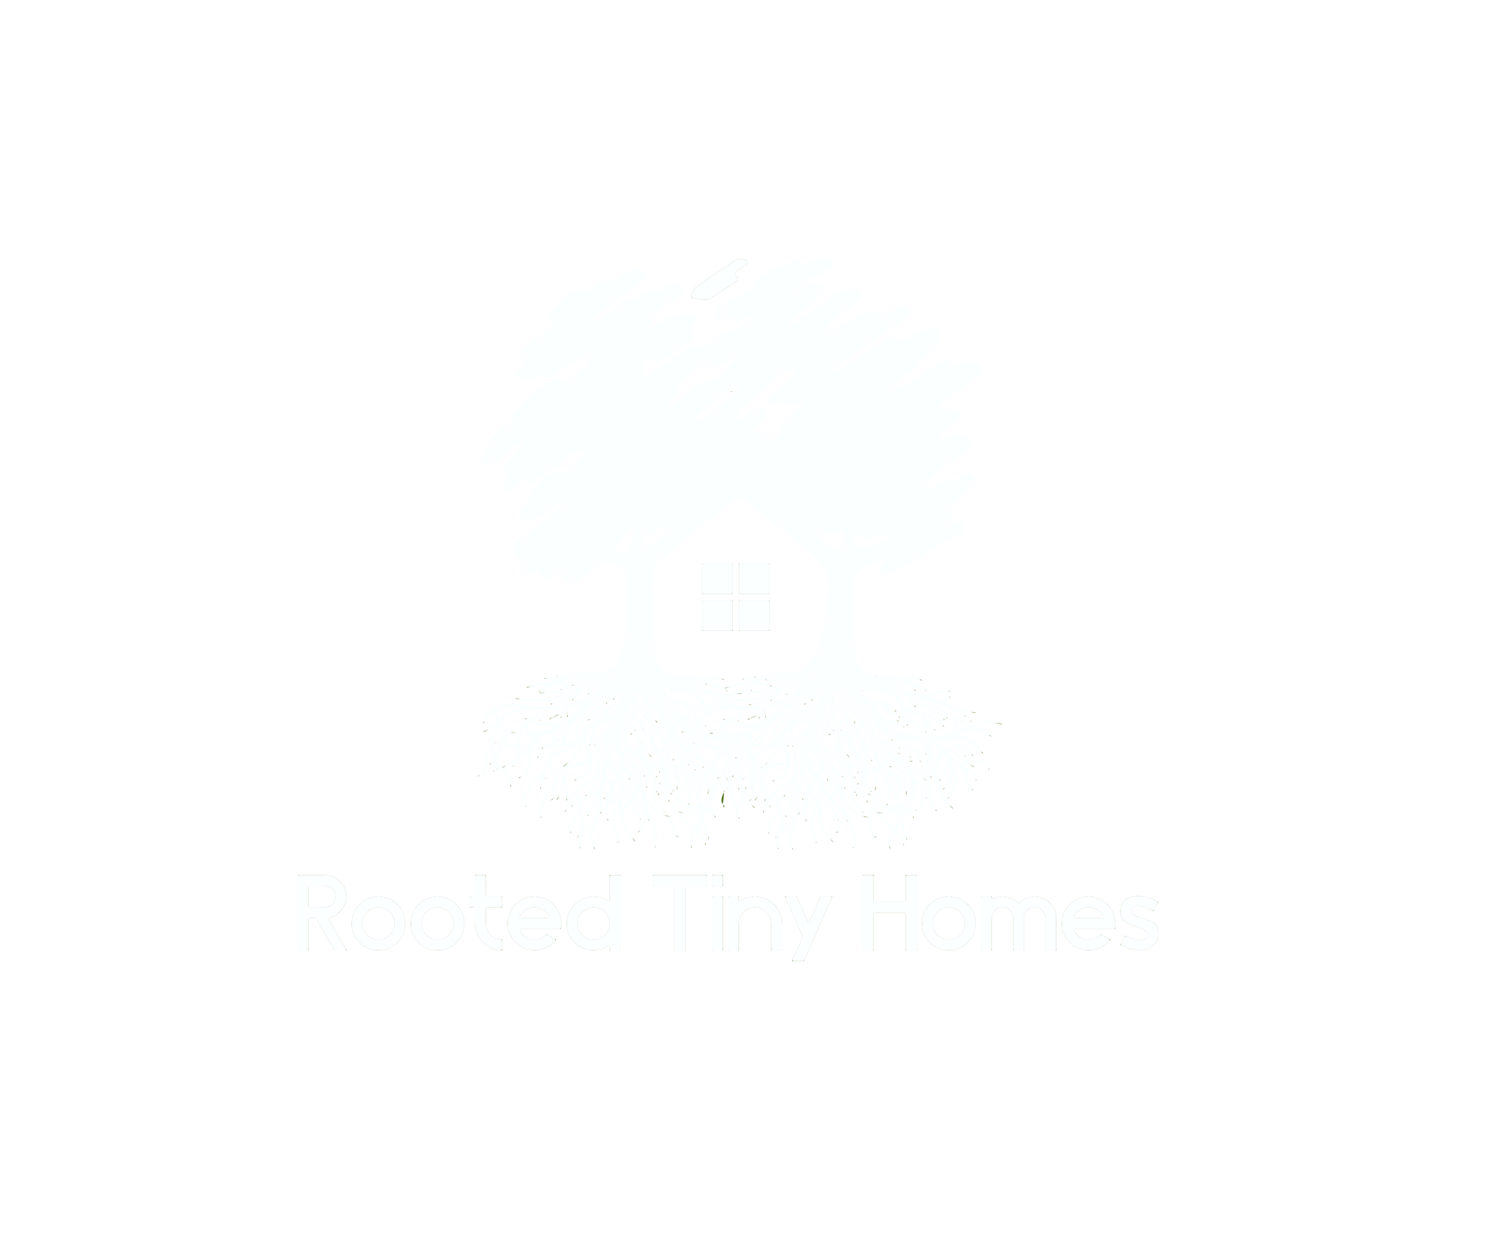 Rooted Tiny Homes